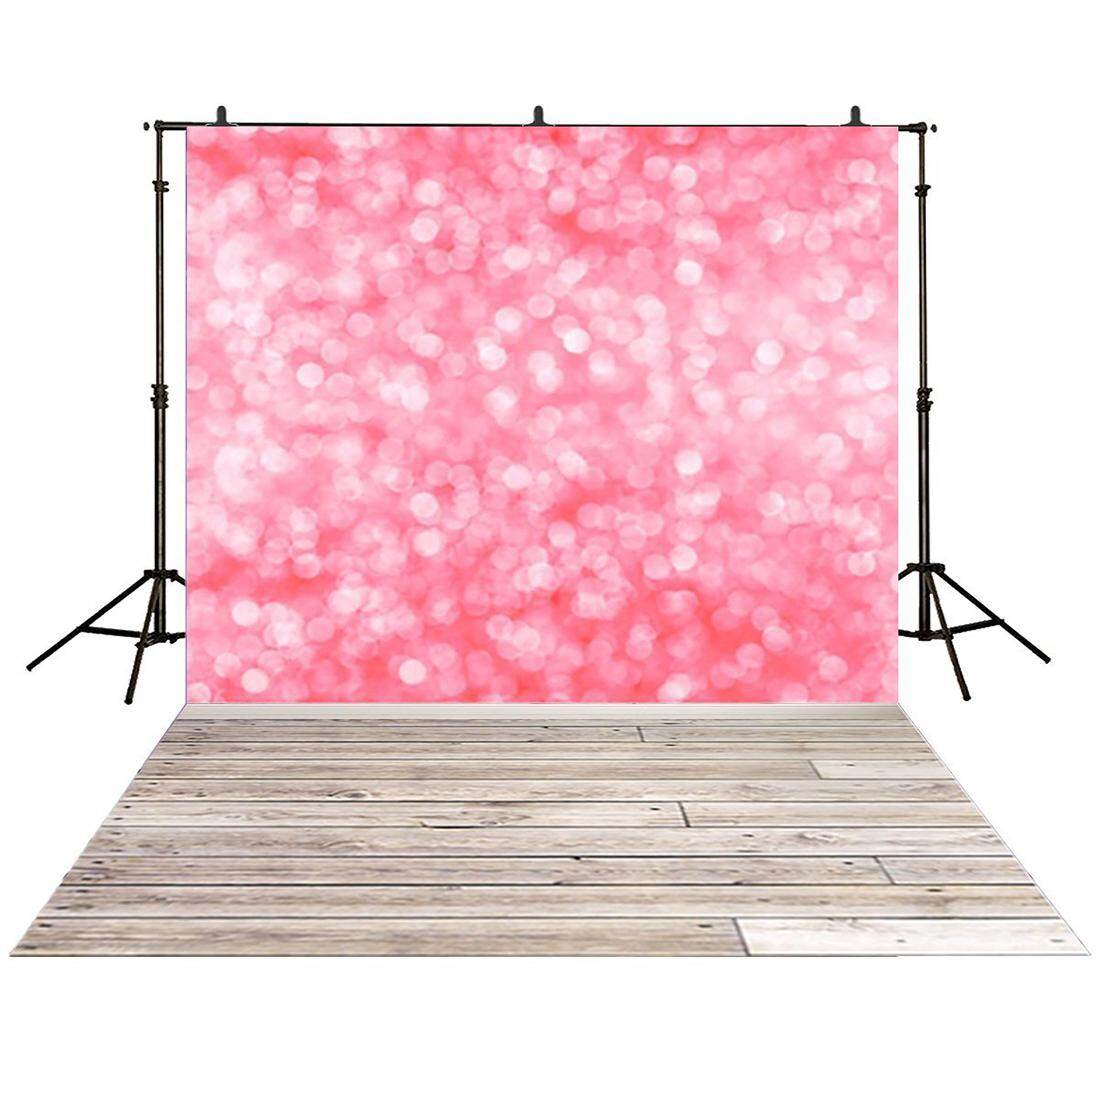 3x5ft Vinyl Photography backdrops Blur pink bubble wood floor Bokeh Snowflake background for photo studio Shooting Photo Booth